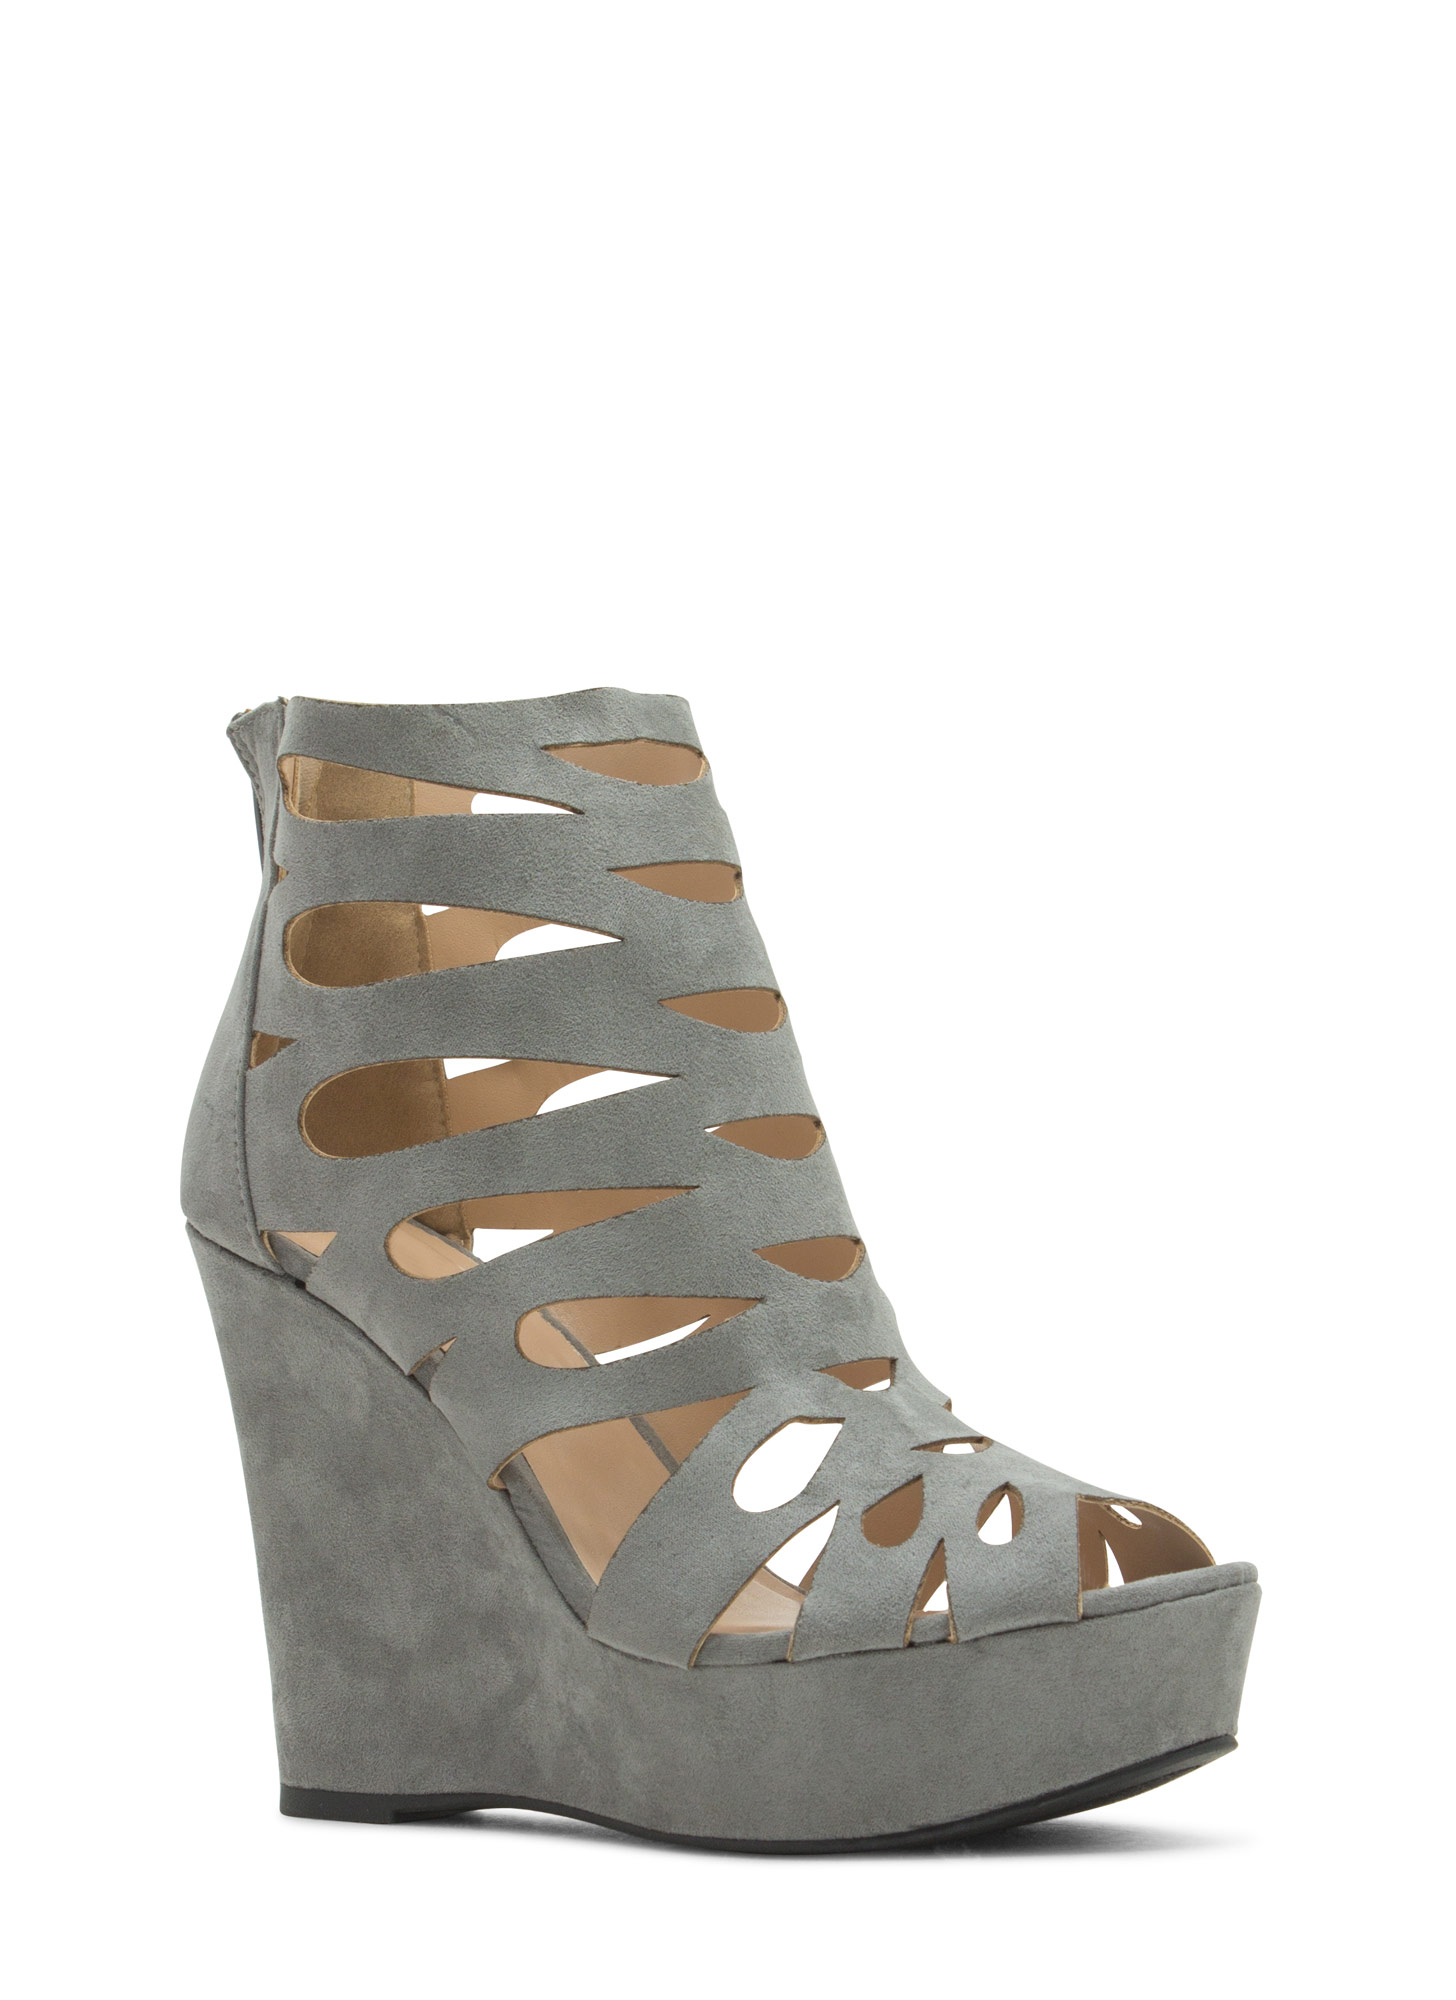 Teardrop Cut-Out Platform Wedges ASHGREY